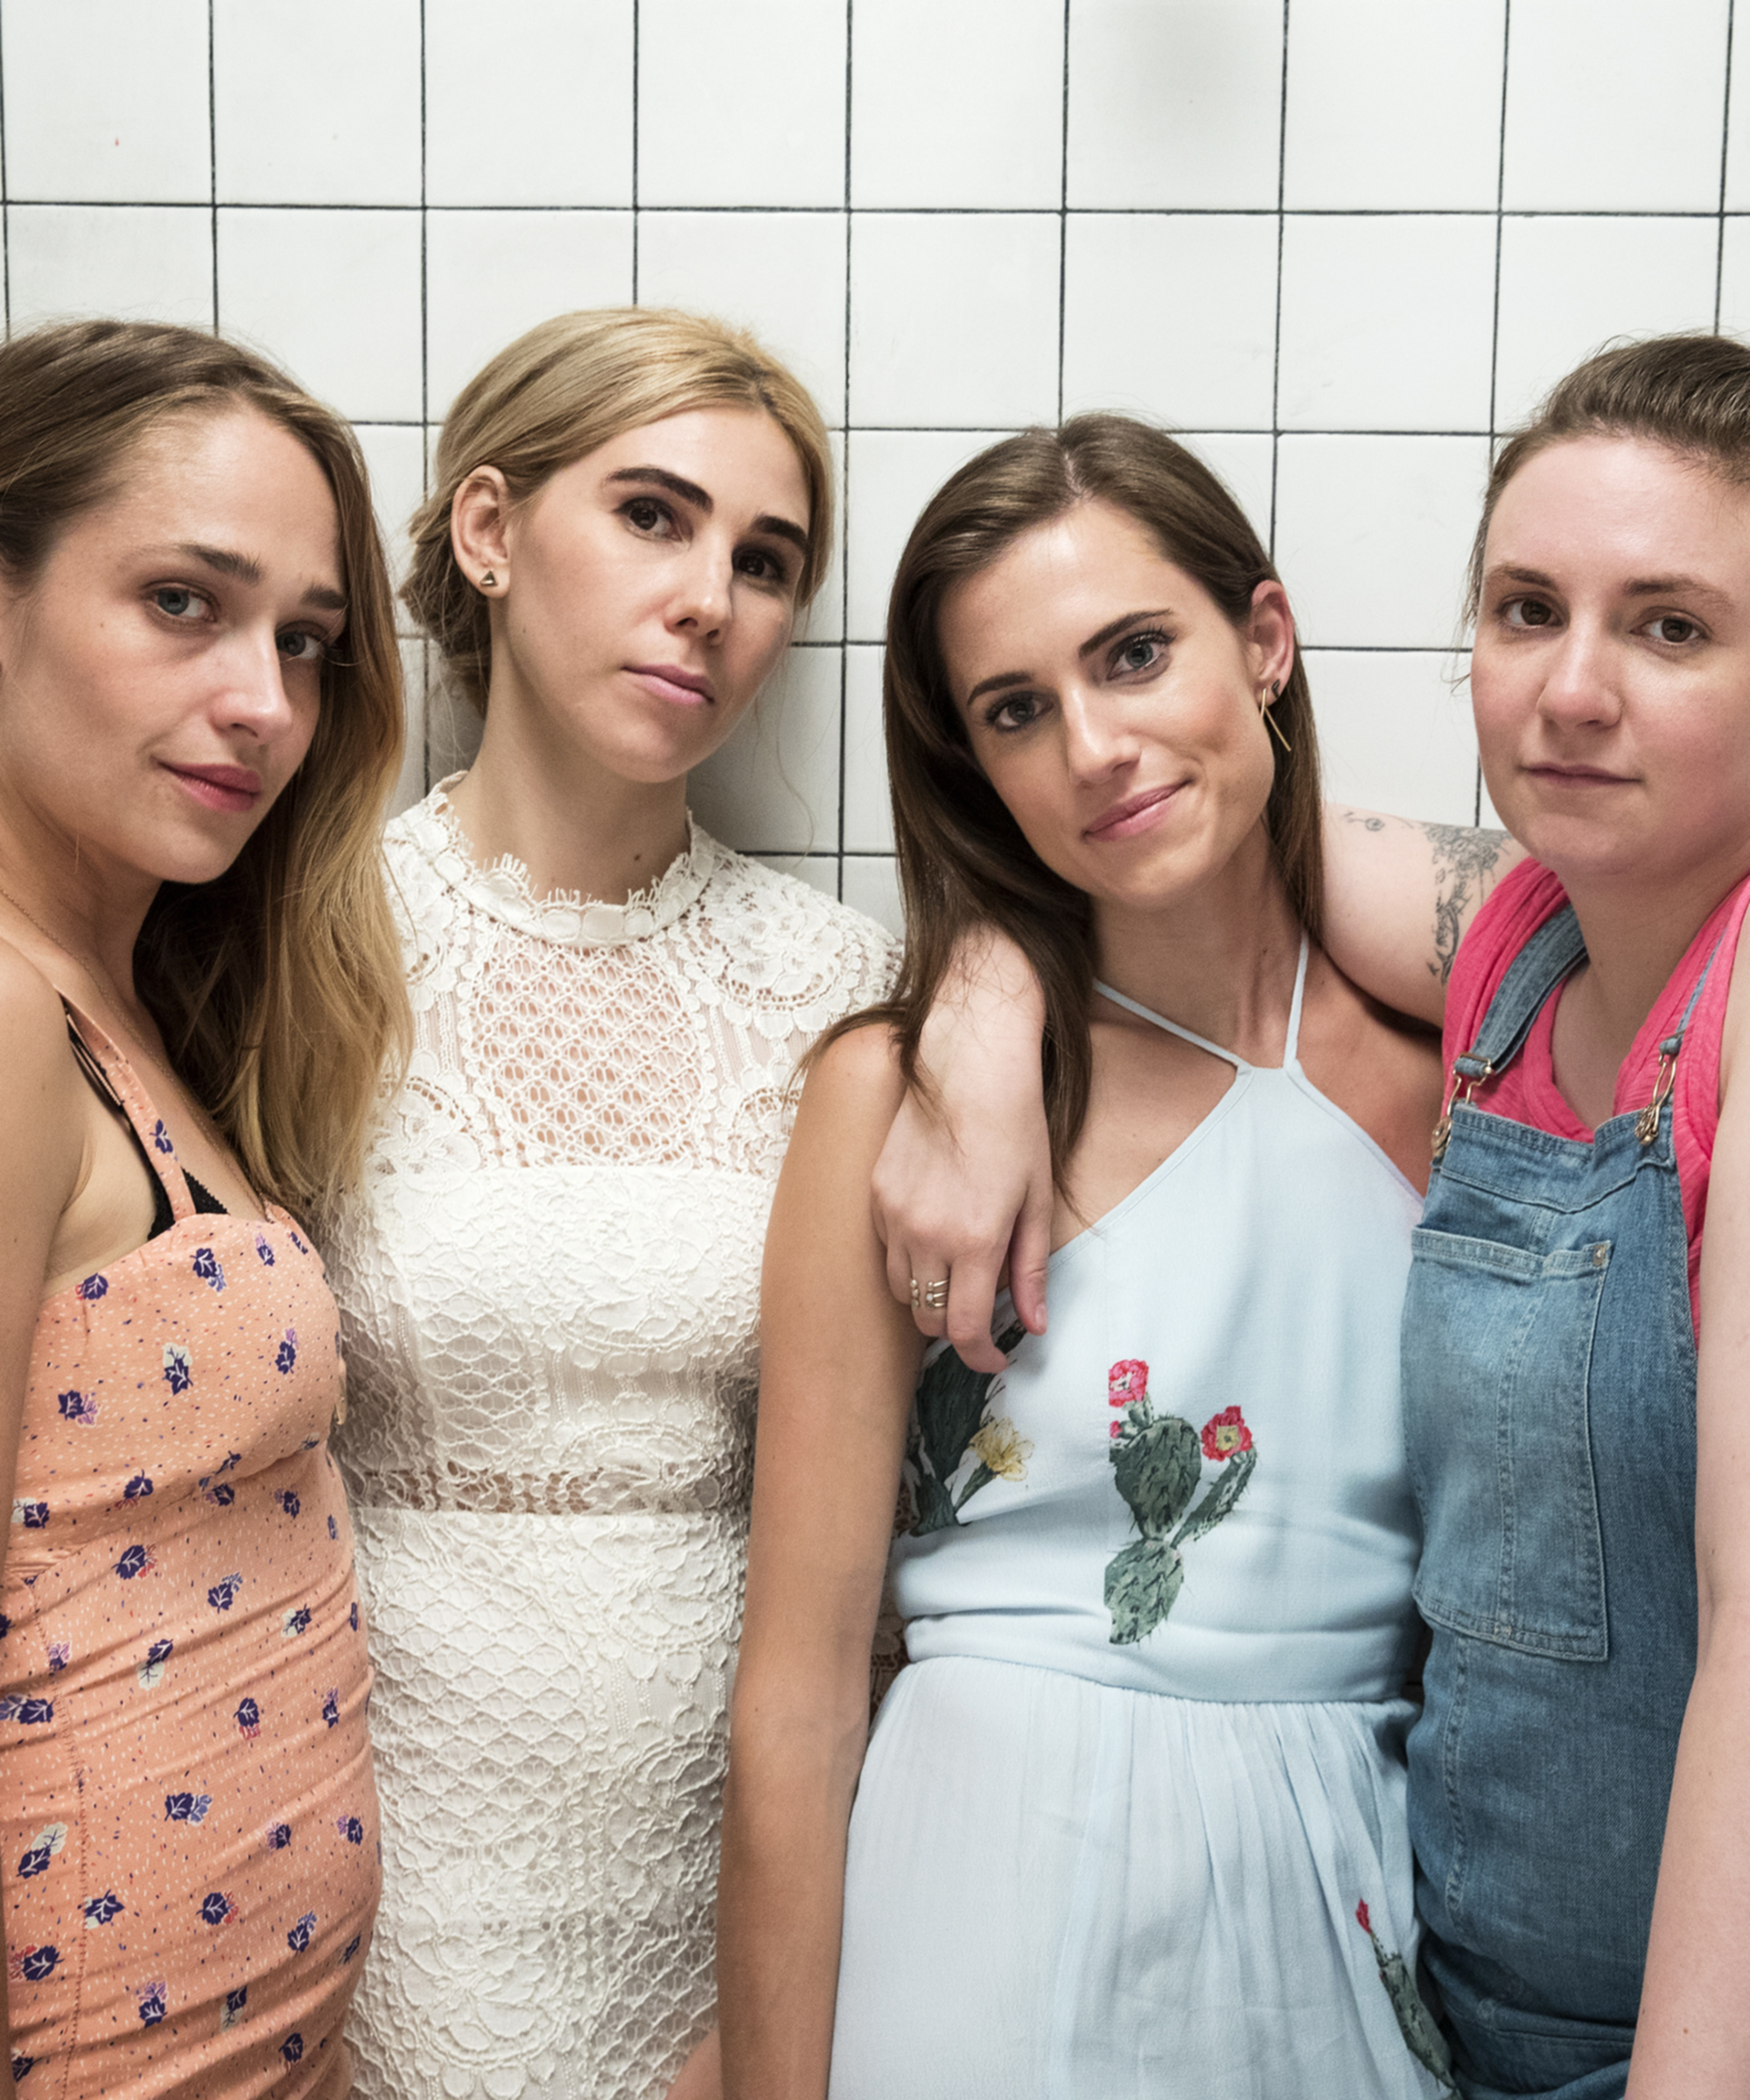 Girls is a brilliant show with a fundamental flaw - where does all that money come from?